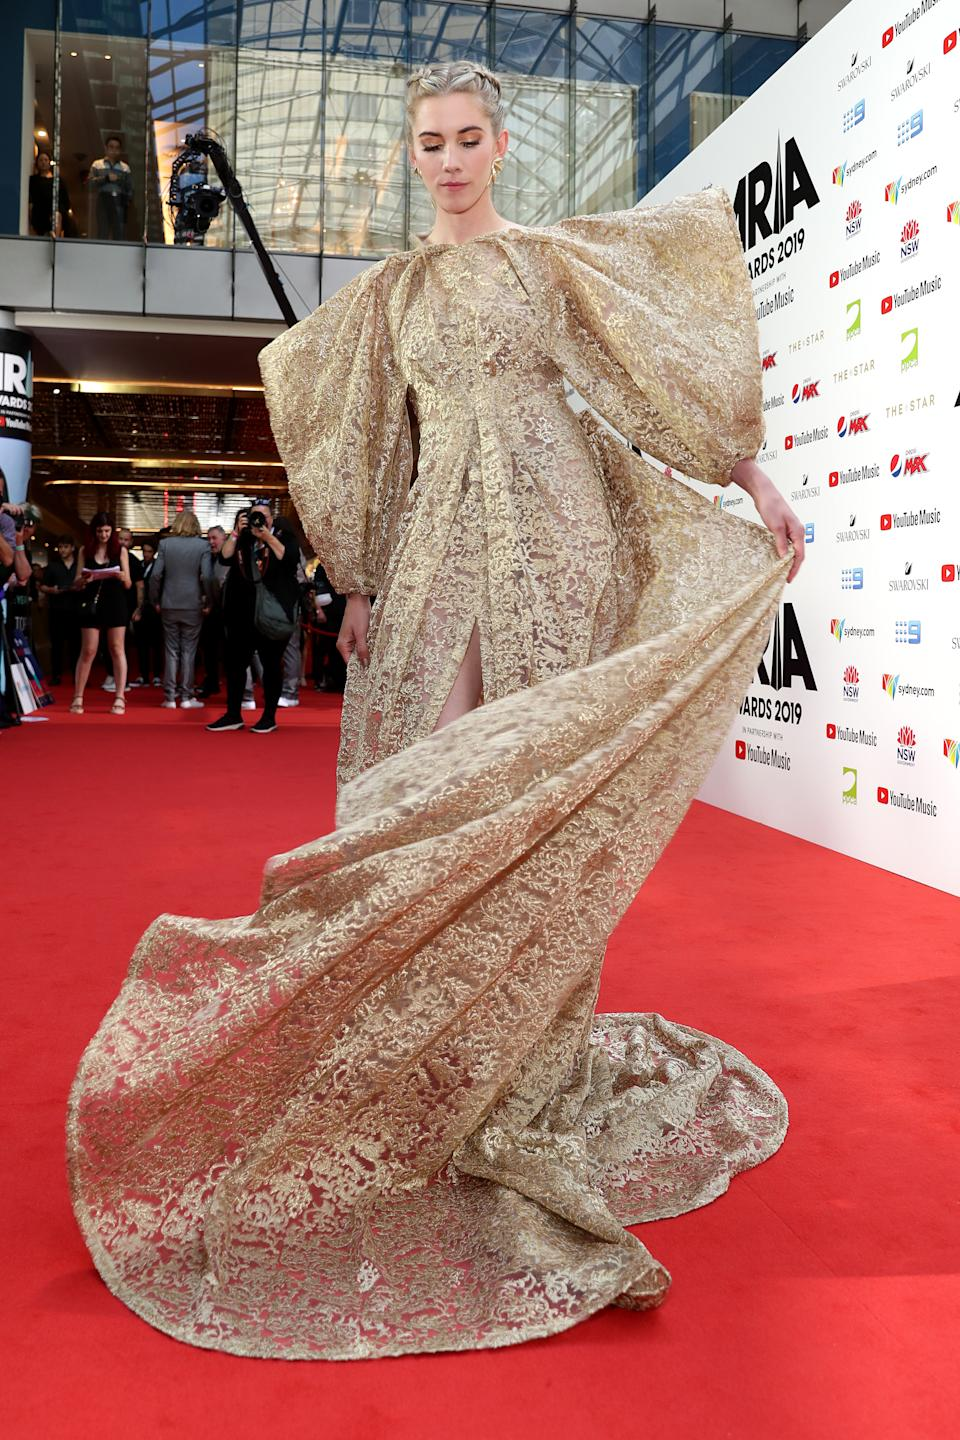 Artists Woodes, arrives for the 33rd Annual ARIA Awards 2019 at The Star. Photo: Getty Images